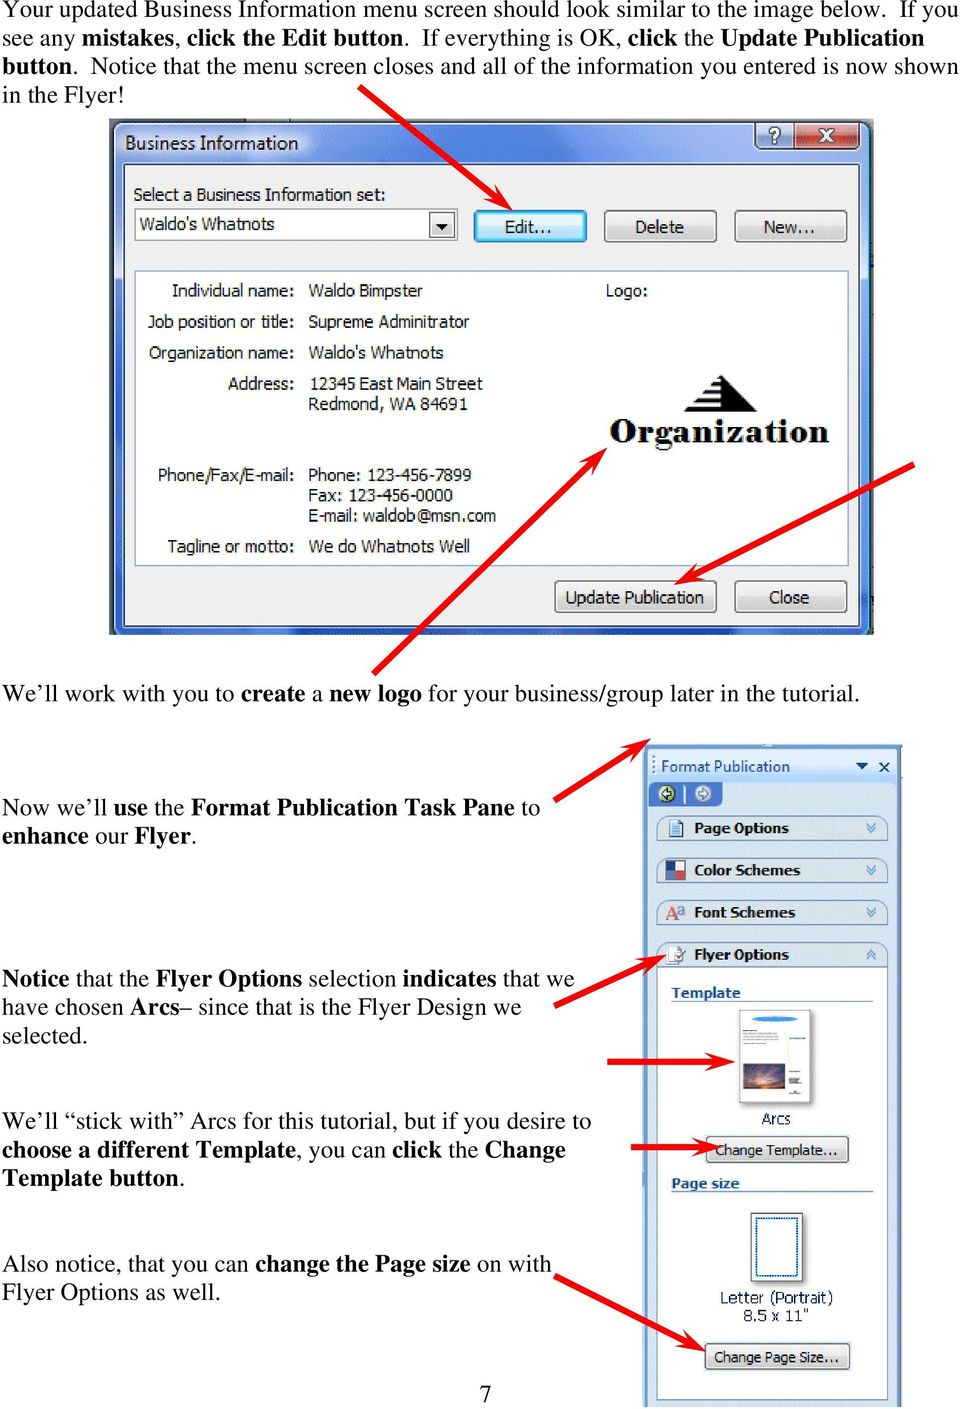 Now we ll use the Format Publication Task Pane to enhance our Flyer. Notice that the Flyer Options selection indicates that we have chosen Arcs since that is the Flyer Design we selected.